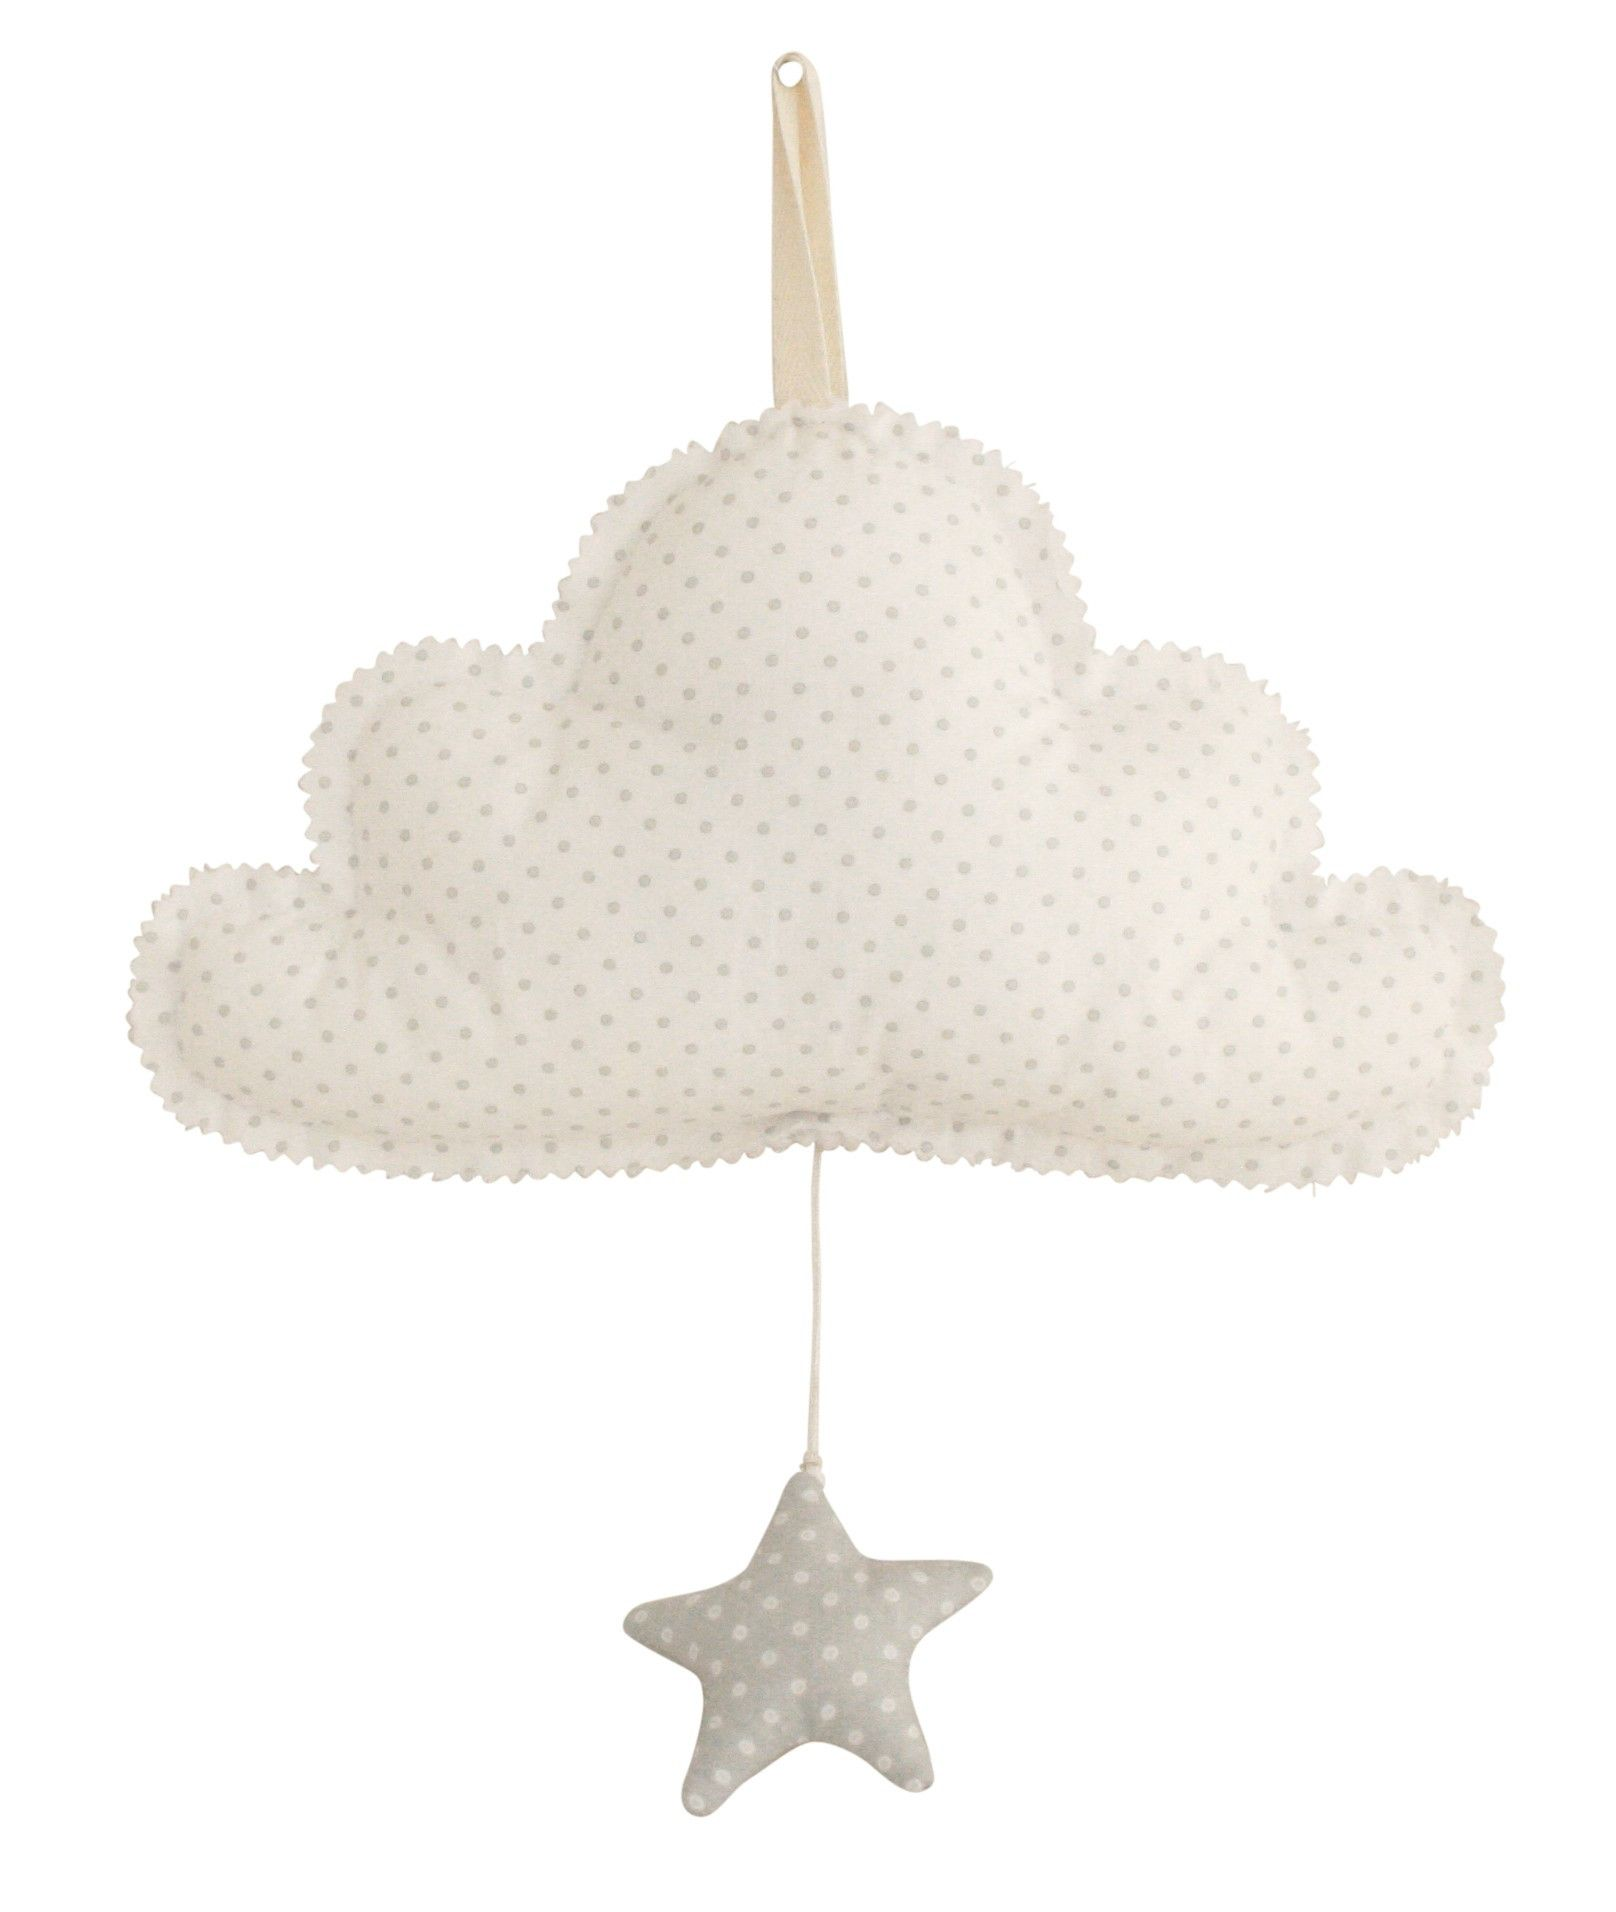 Alimrose Designs - Alimrose Musical Cloud